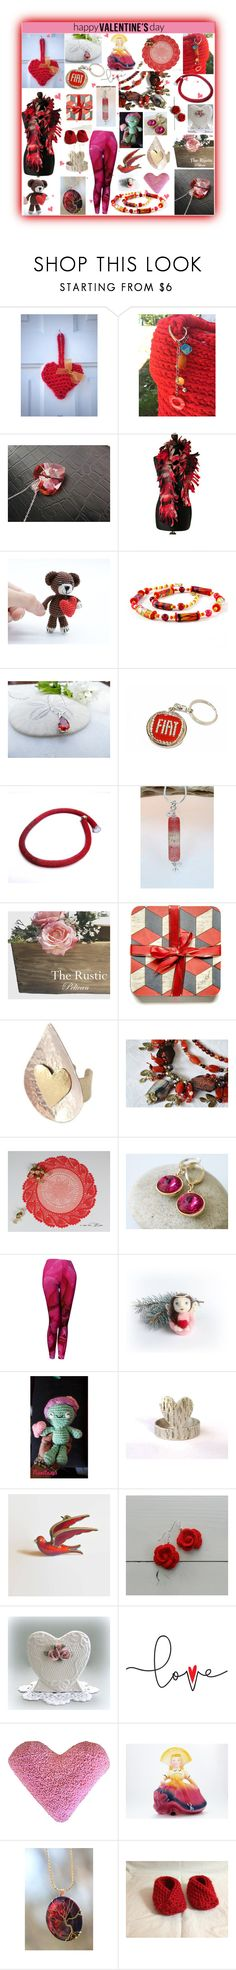 """""""Happy Valentines Day"""" by belladonnasjoy ❤ liked on Polyvore featuring PINK ANGEL, modern, rustic and vintage"""